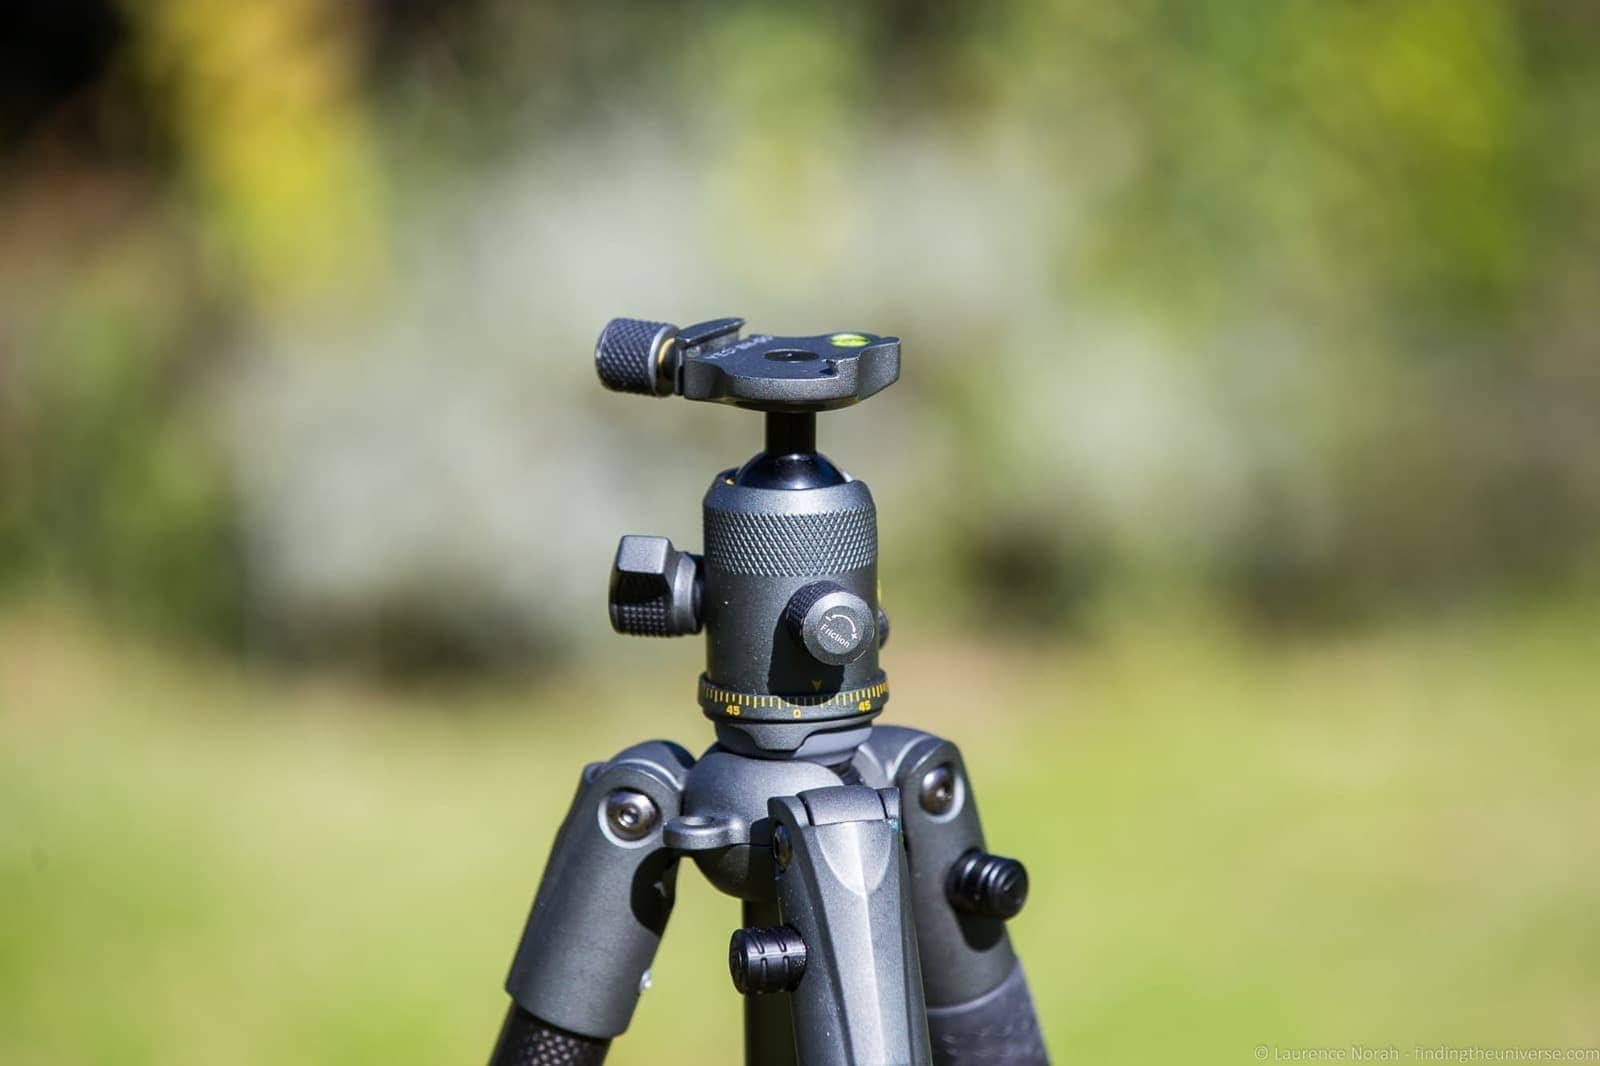 VEO 2 tripod up close